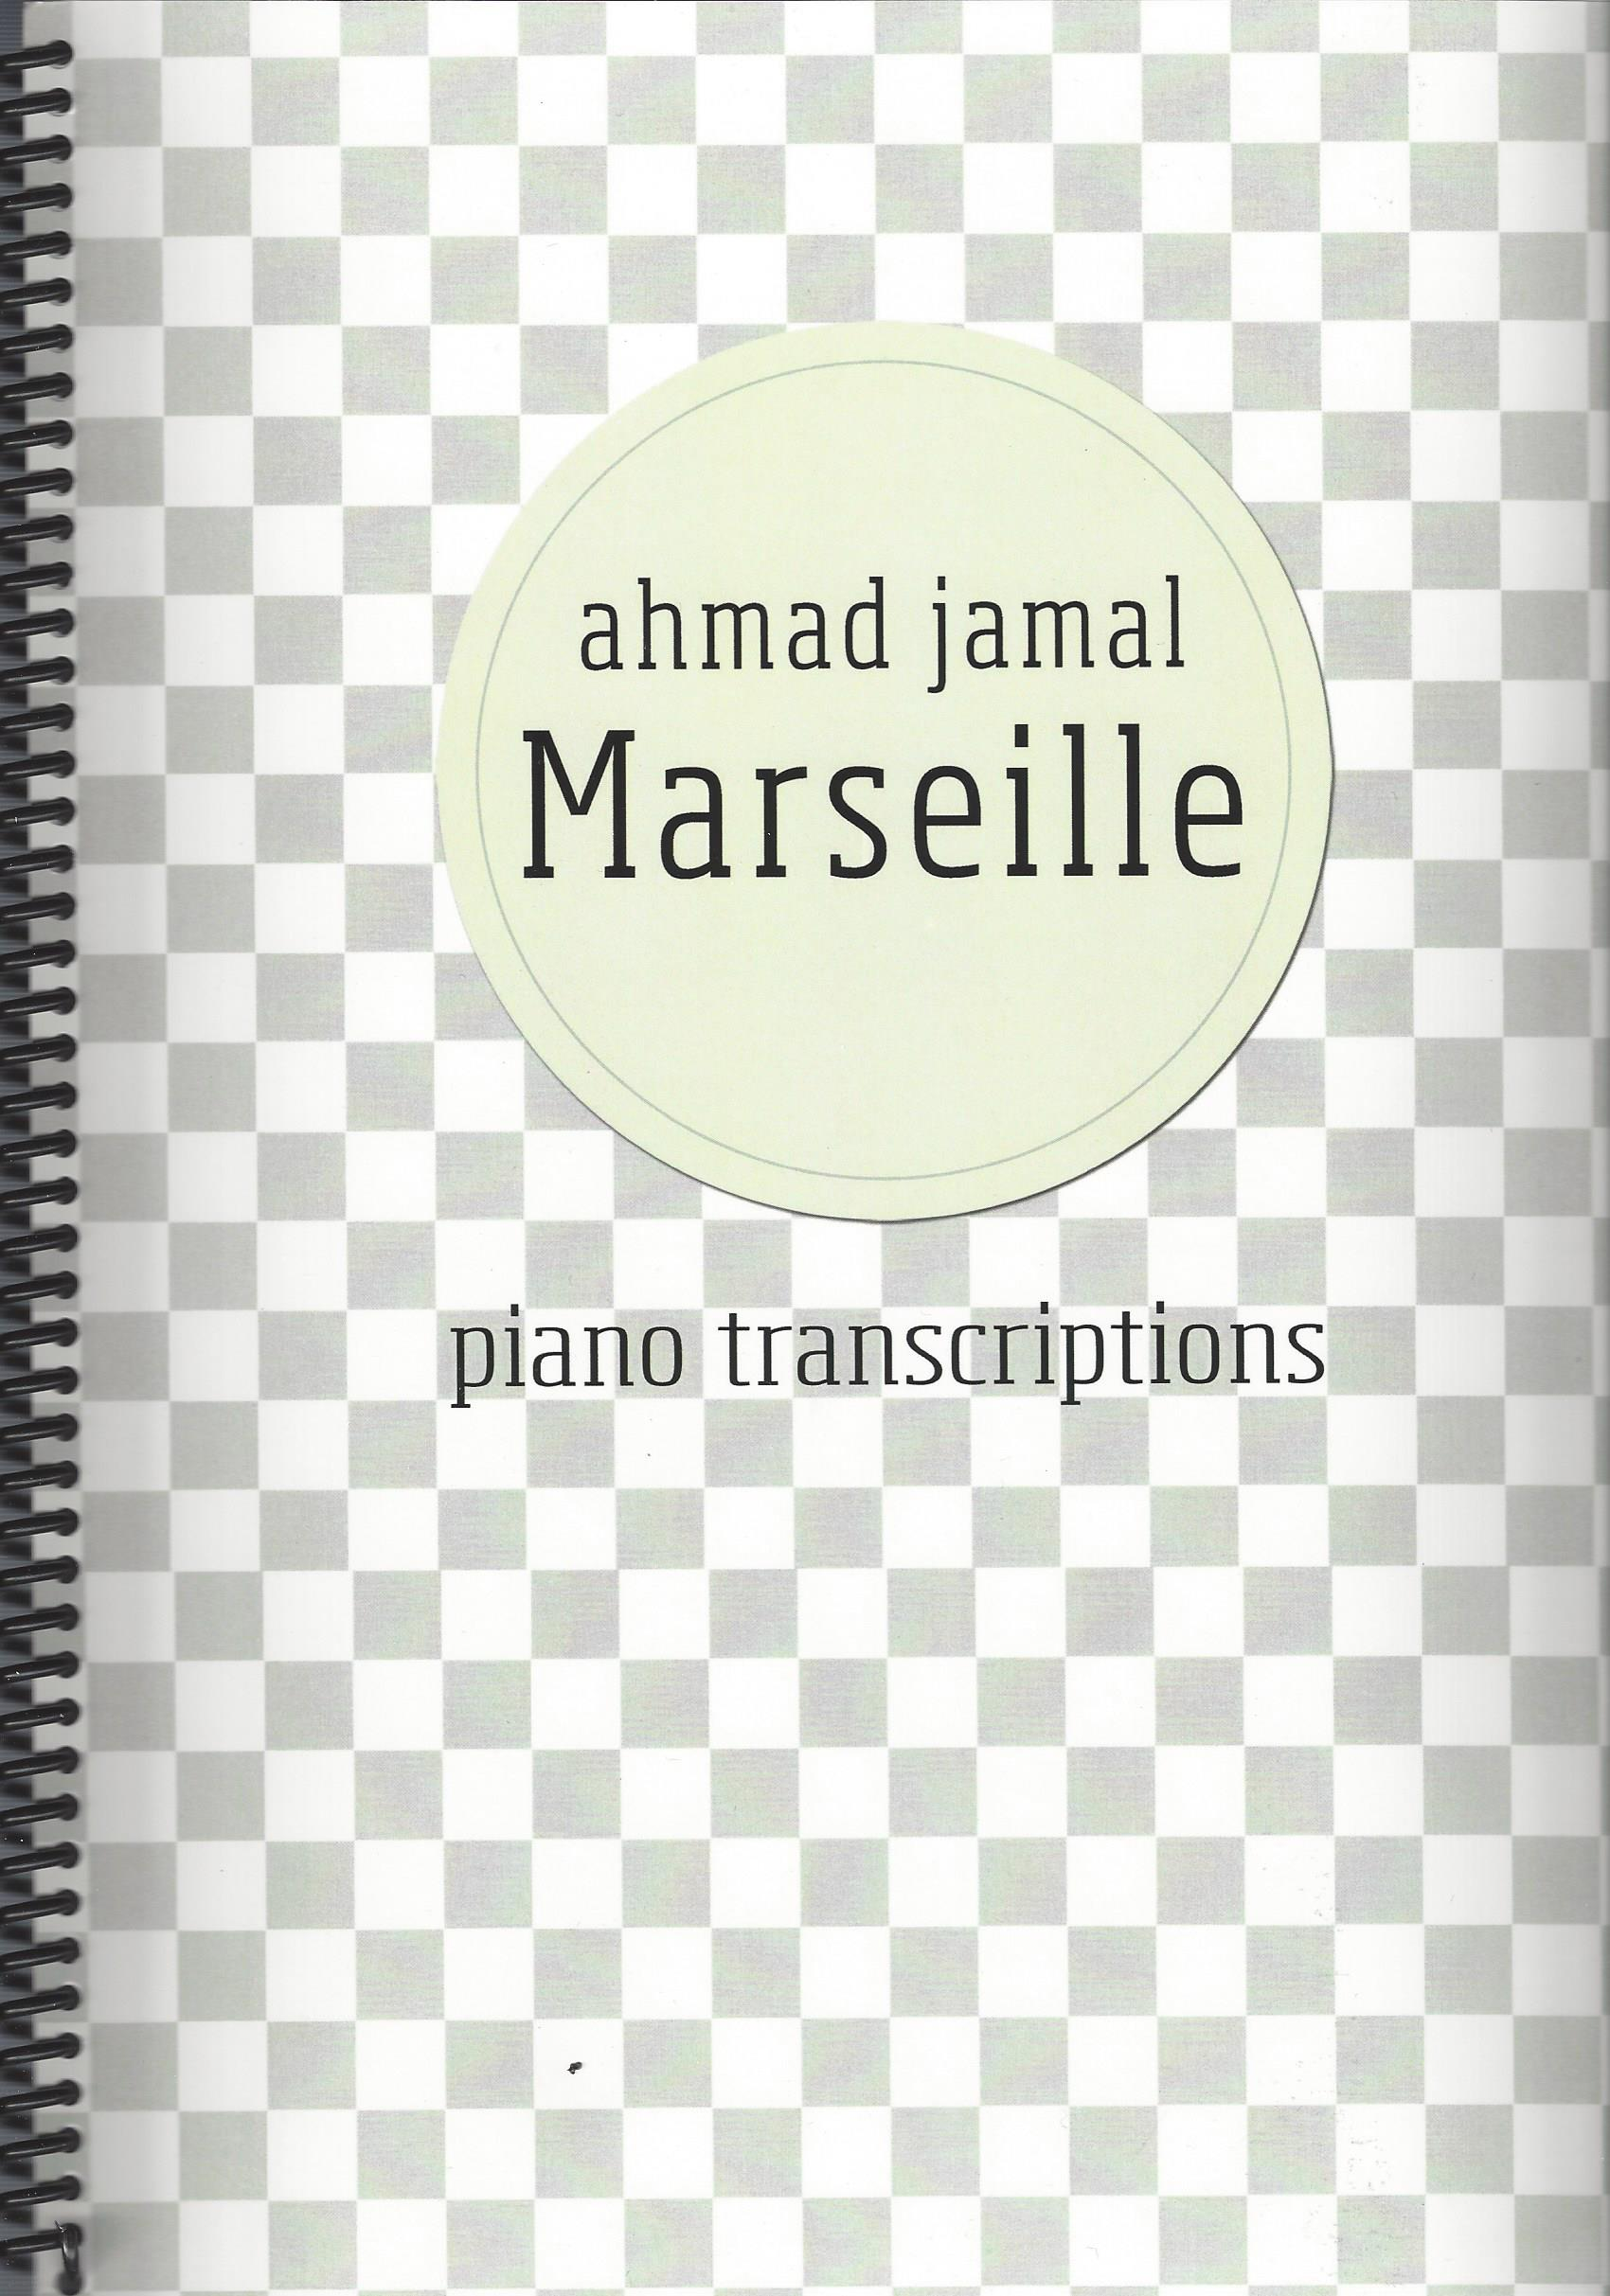 Ahmad Jamal Marseille - Piano Transcriptions